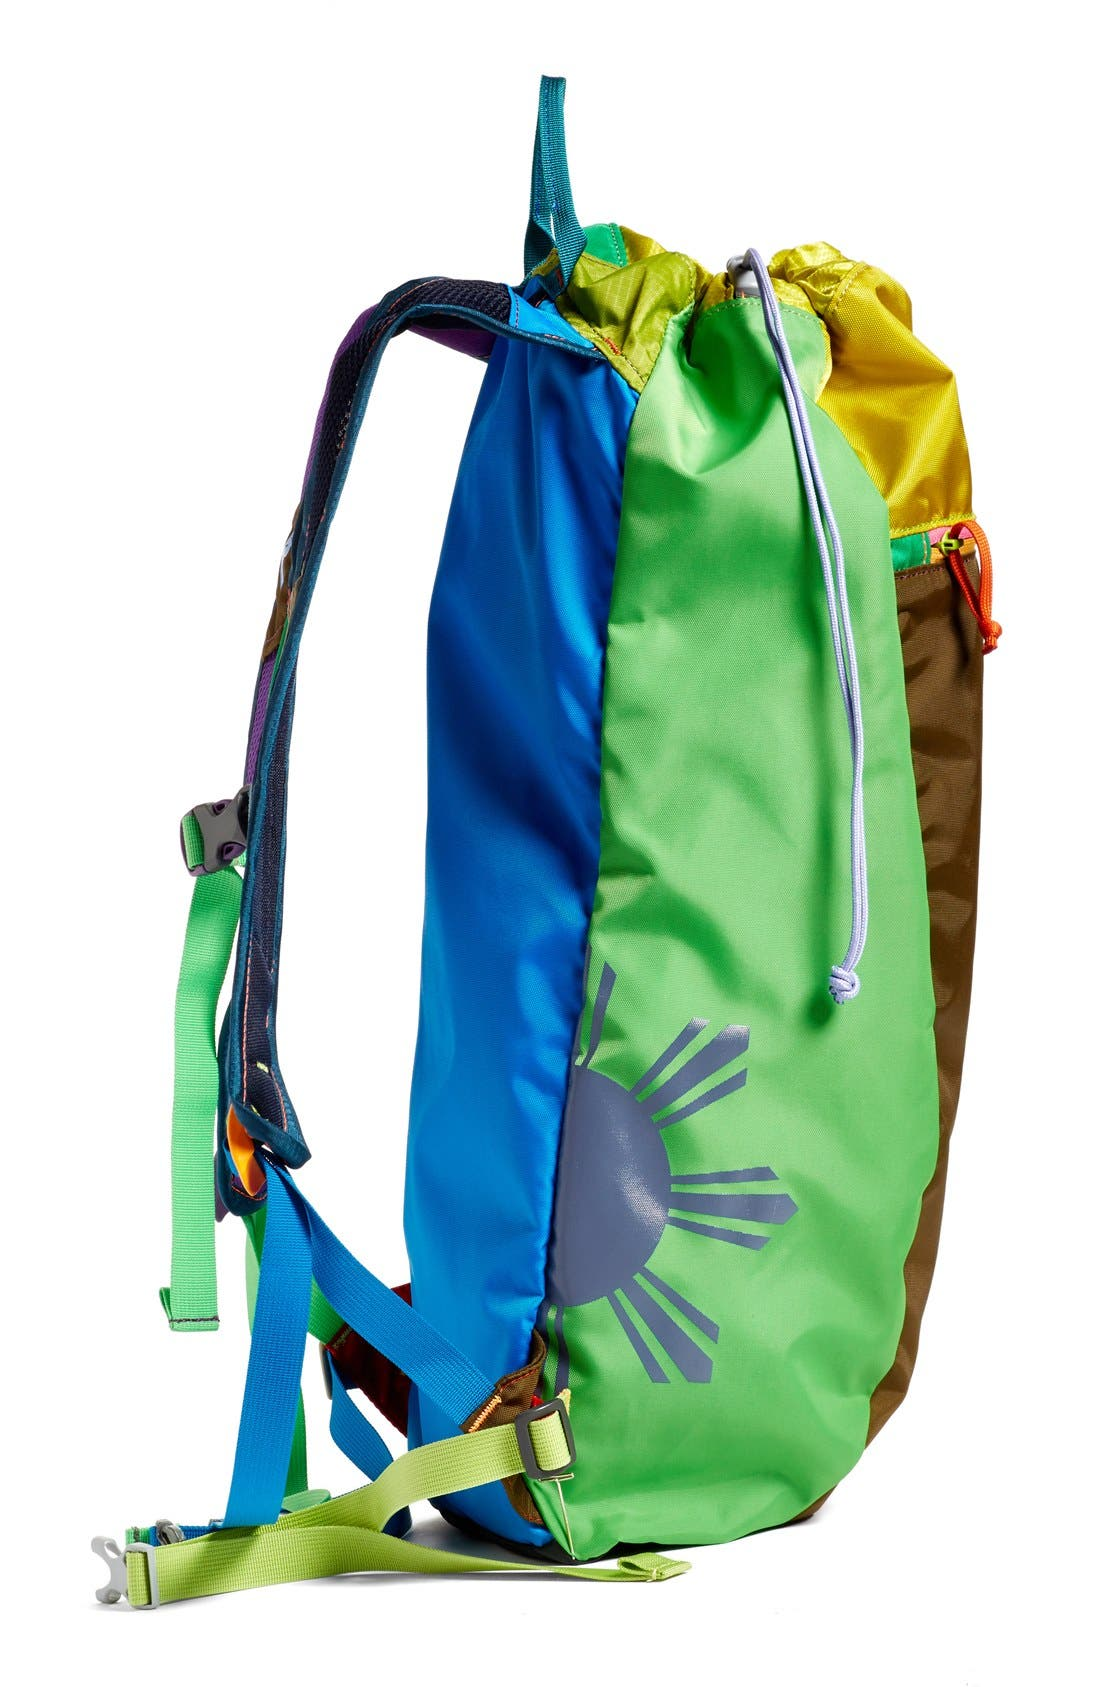 Luzon Del Dia One of a Kind Ripstop Nylon Daypack,                             Alternate thumbnail 3, color,                             960